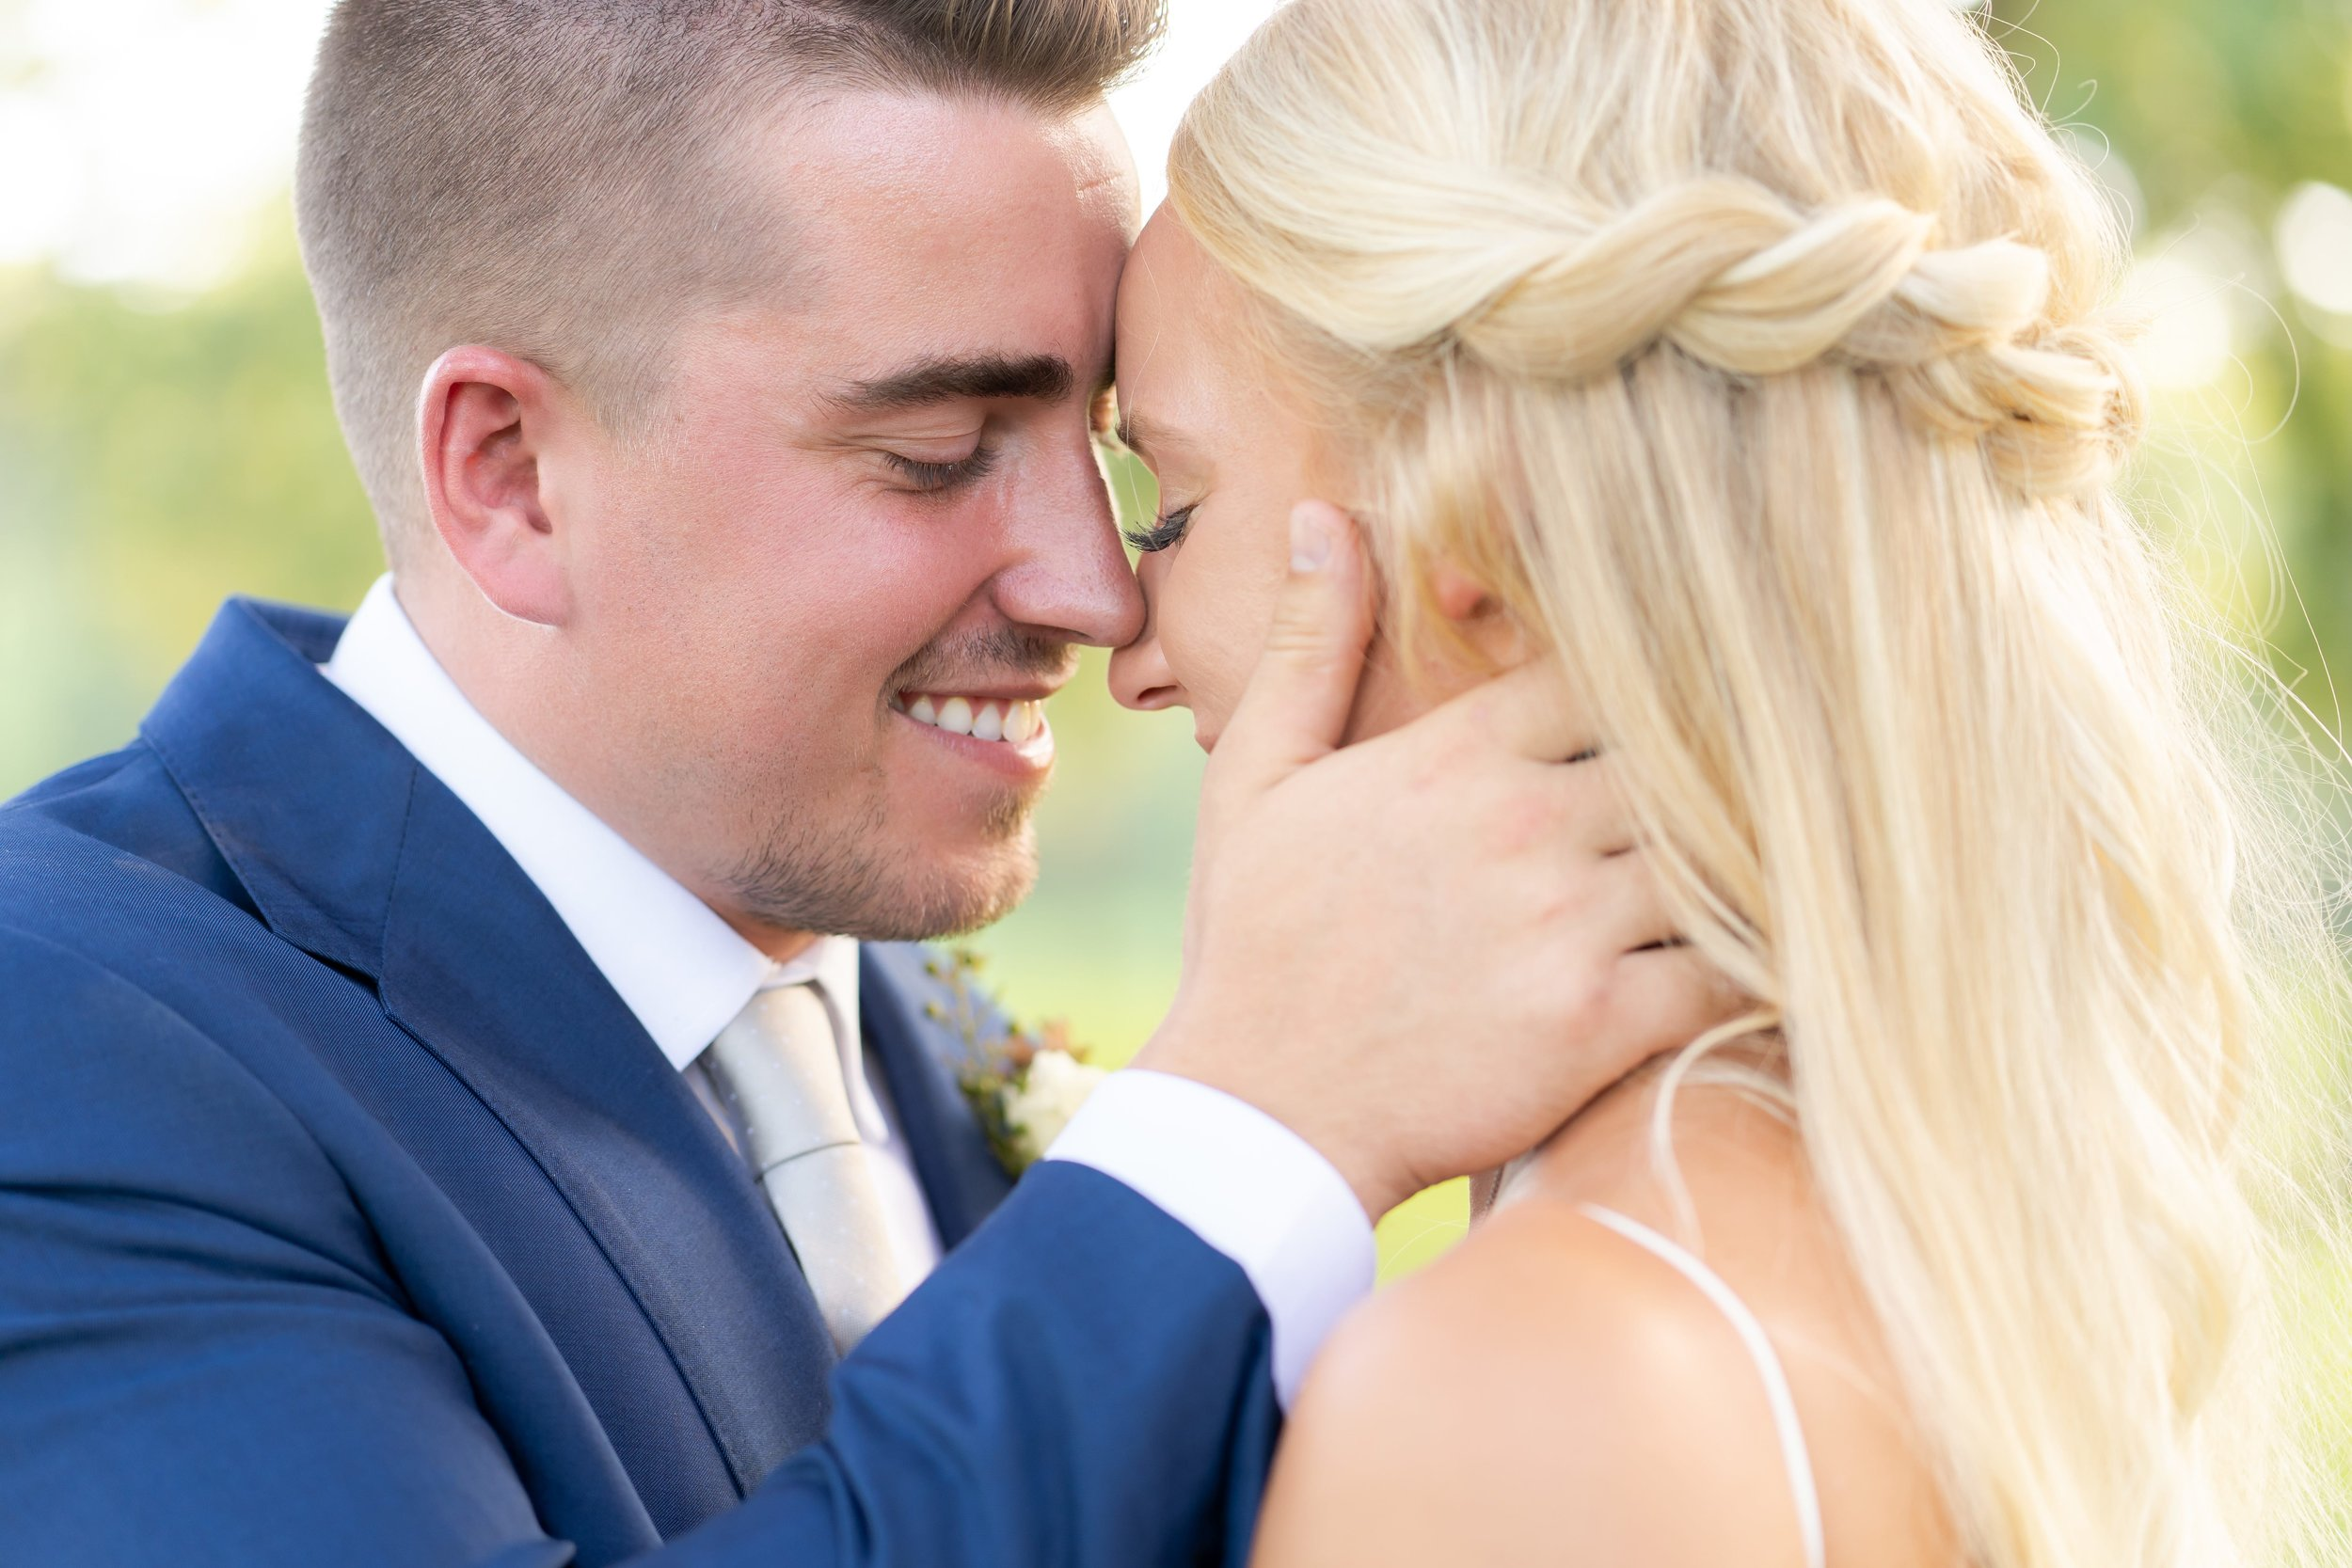 A bride and groom leaning in and touching noses in an intimate gesture.